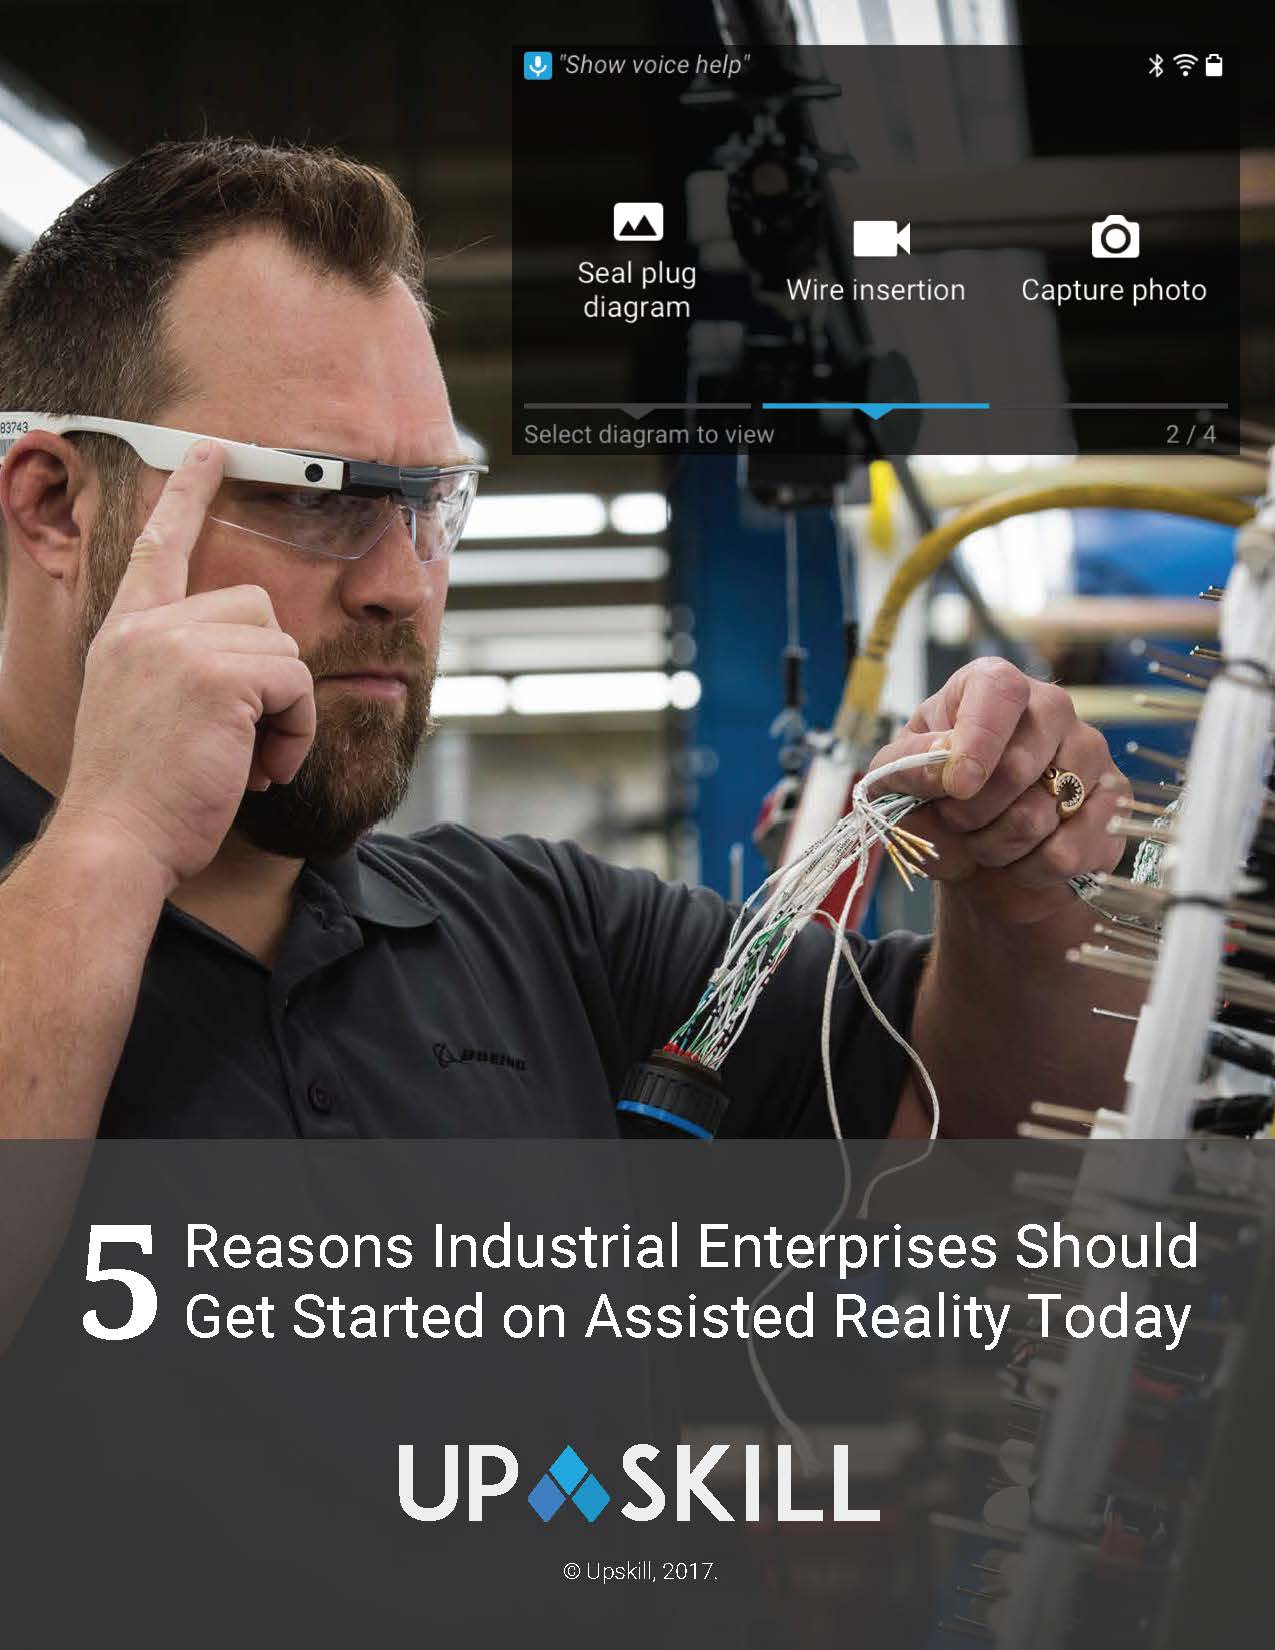 5 Reasons Industrial Enterprises Should Get Started on Assisted Reality Today